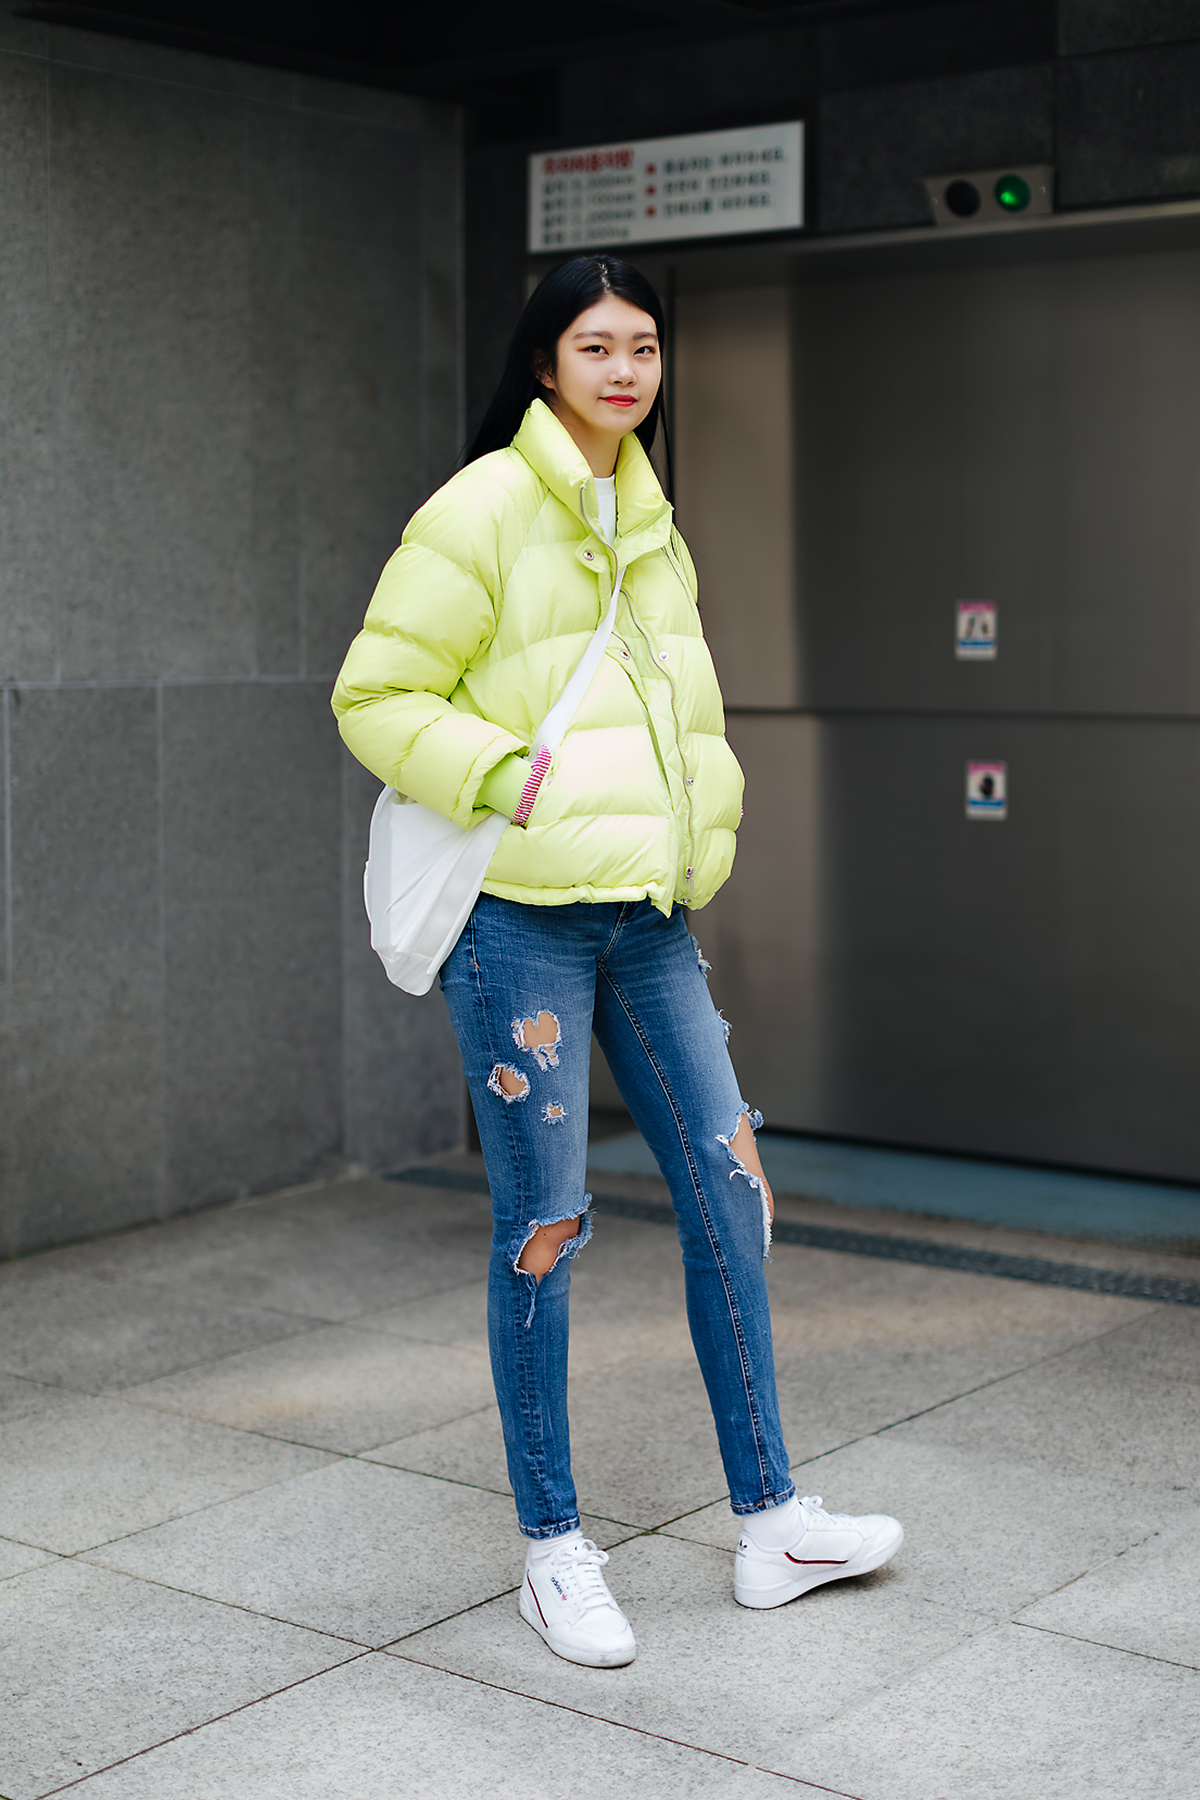 Women fall street style fourth week of october 2018 in seoul 2